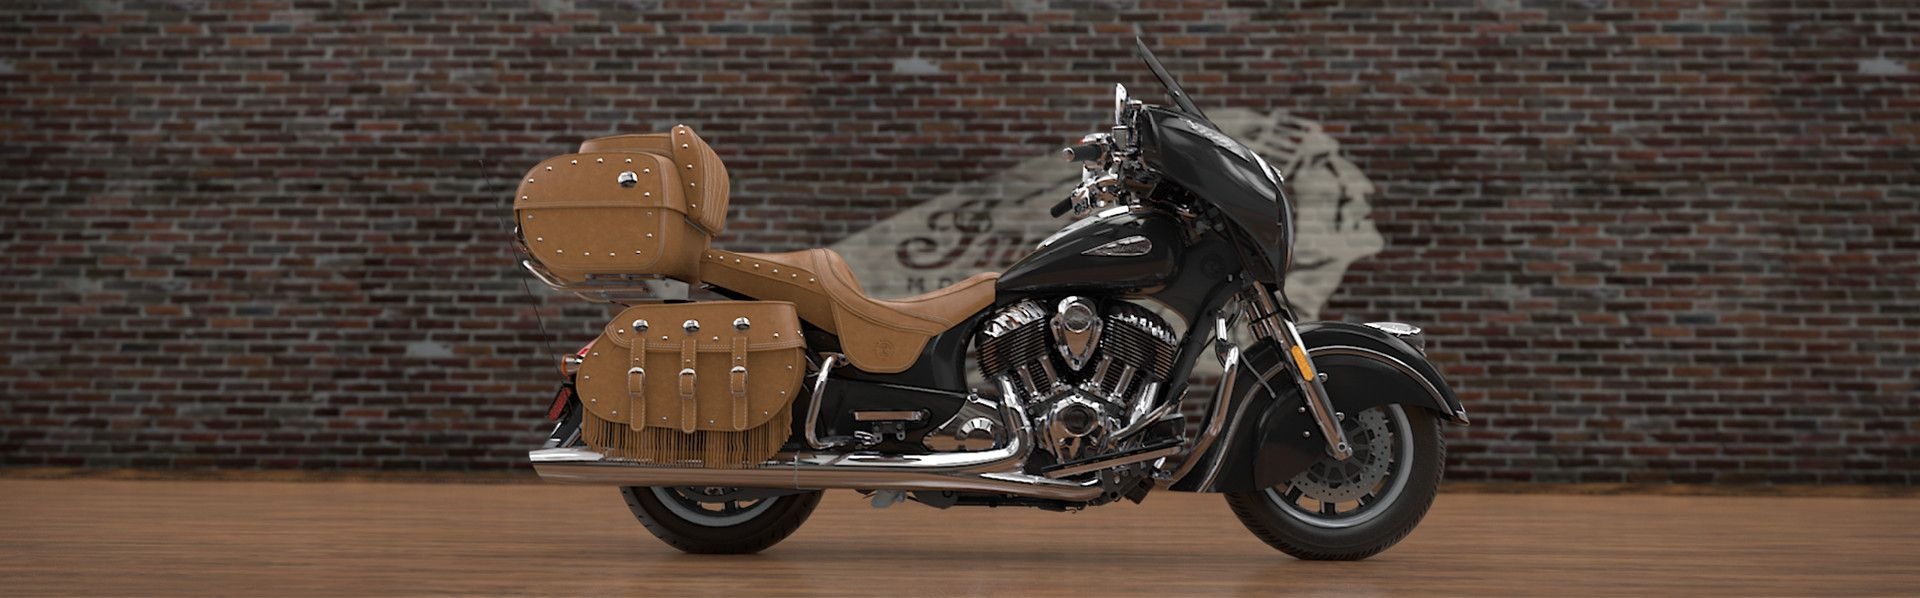 cruisers-indian-roadmaster-classic